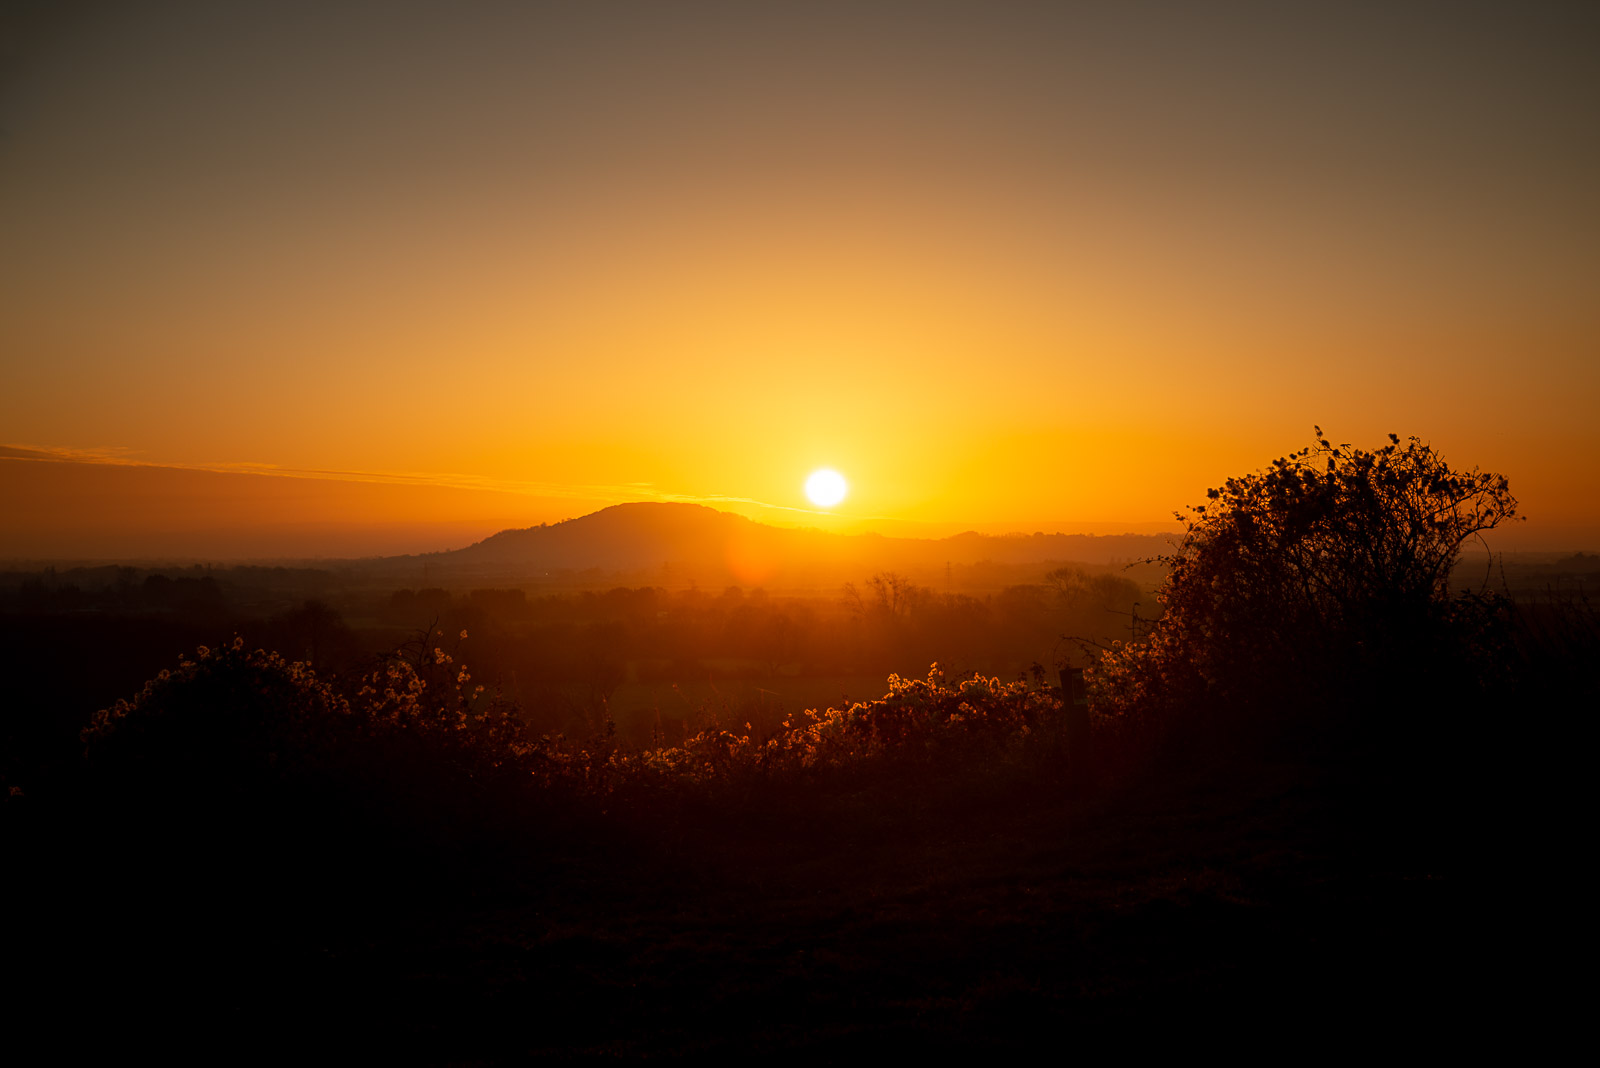 Brent Knoll Sunset - From the base of Crook Peak, Mendip Hills, Somerset, UK. ID JB1_9985